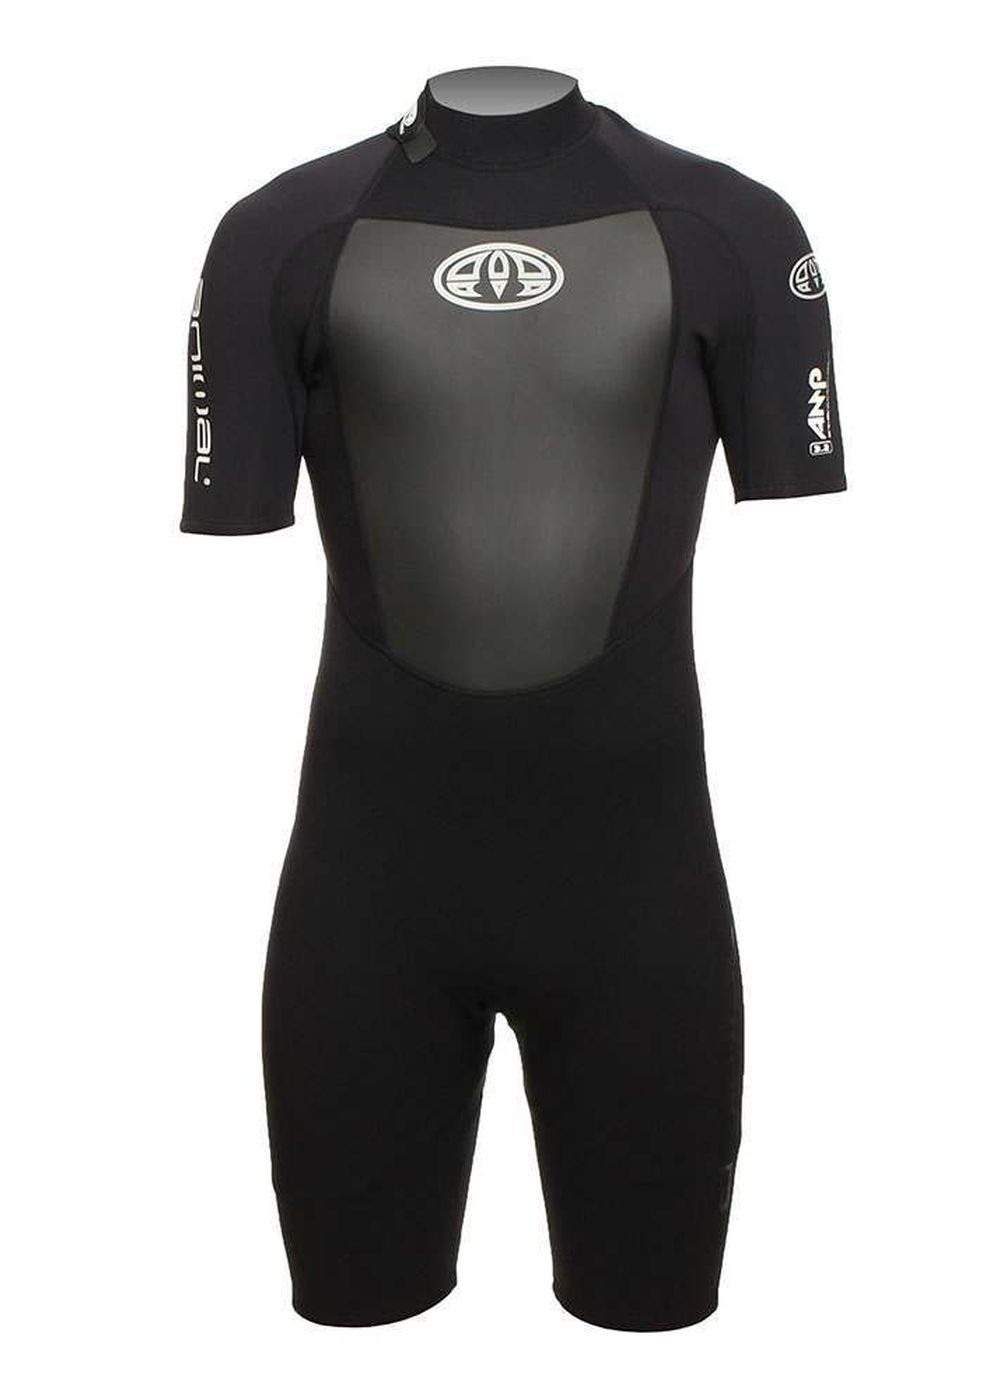 ANIMAL AMP BZ 3/2 SHORTY WETSUIT 2015 Black